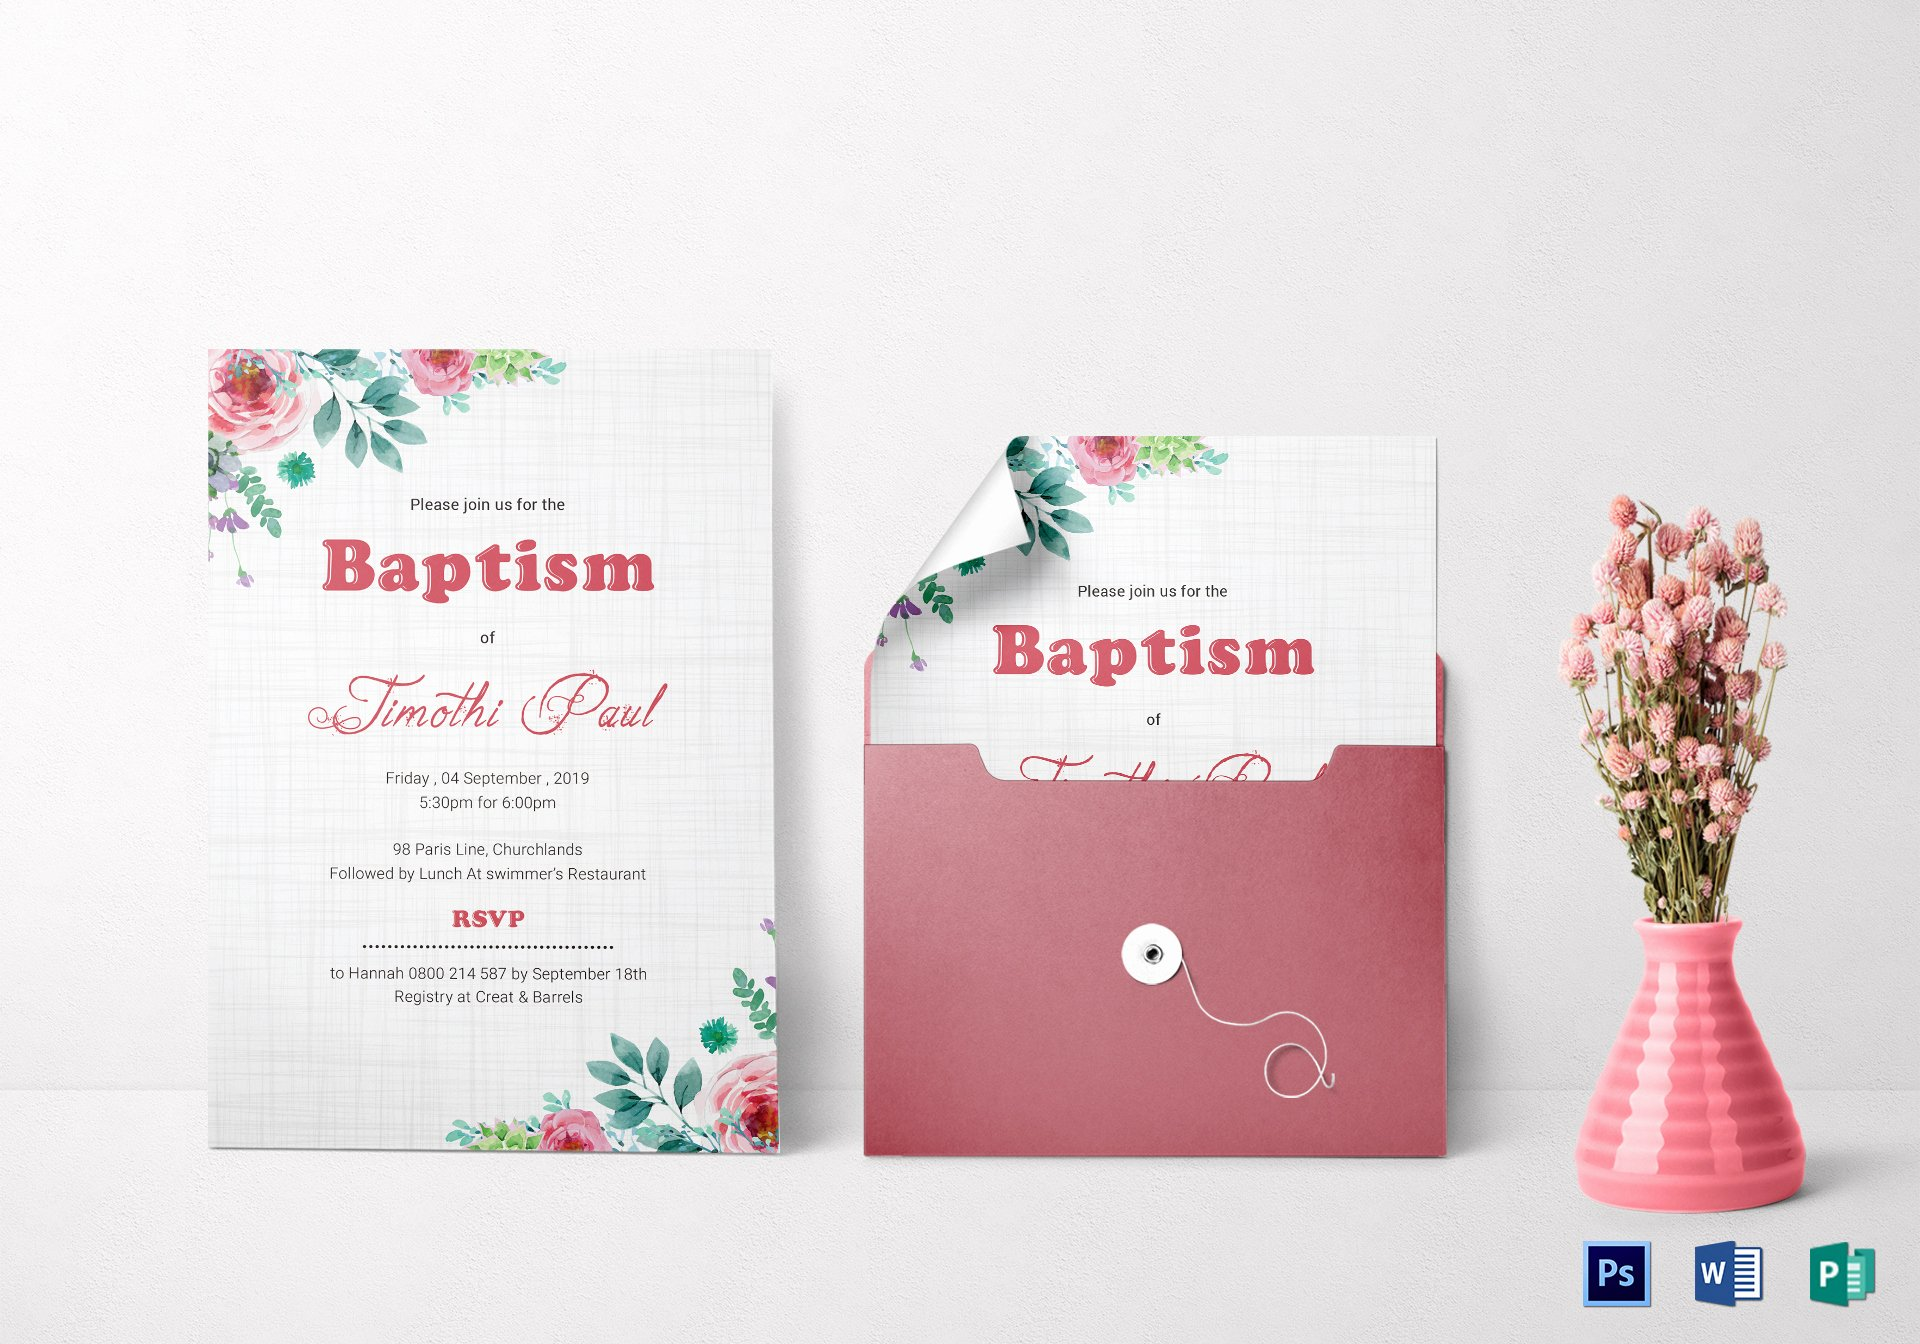 Baptism Invitation Template Microsoft Word Elegant Baptism Invitation Card Design Template In Word Psd Publisher